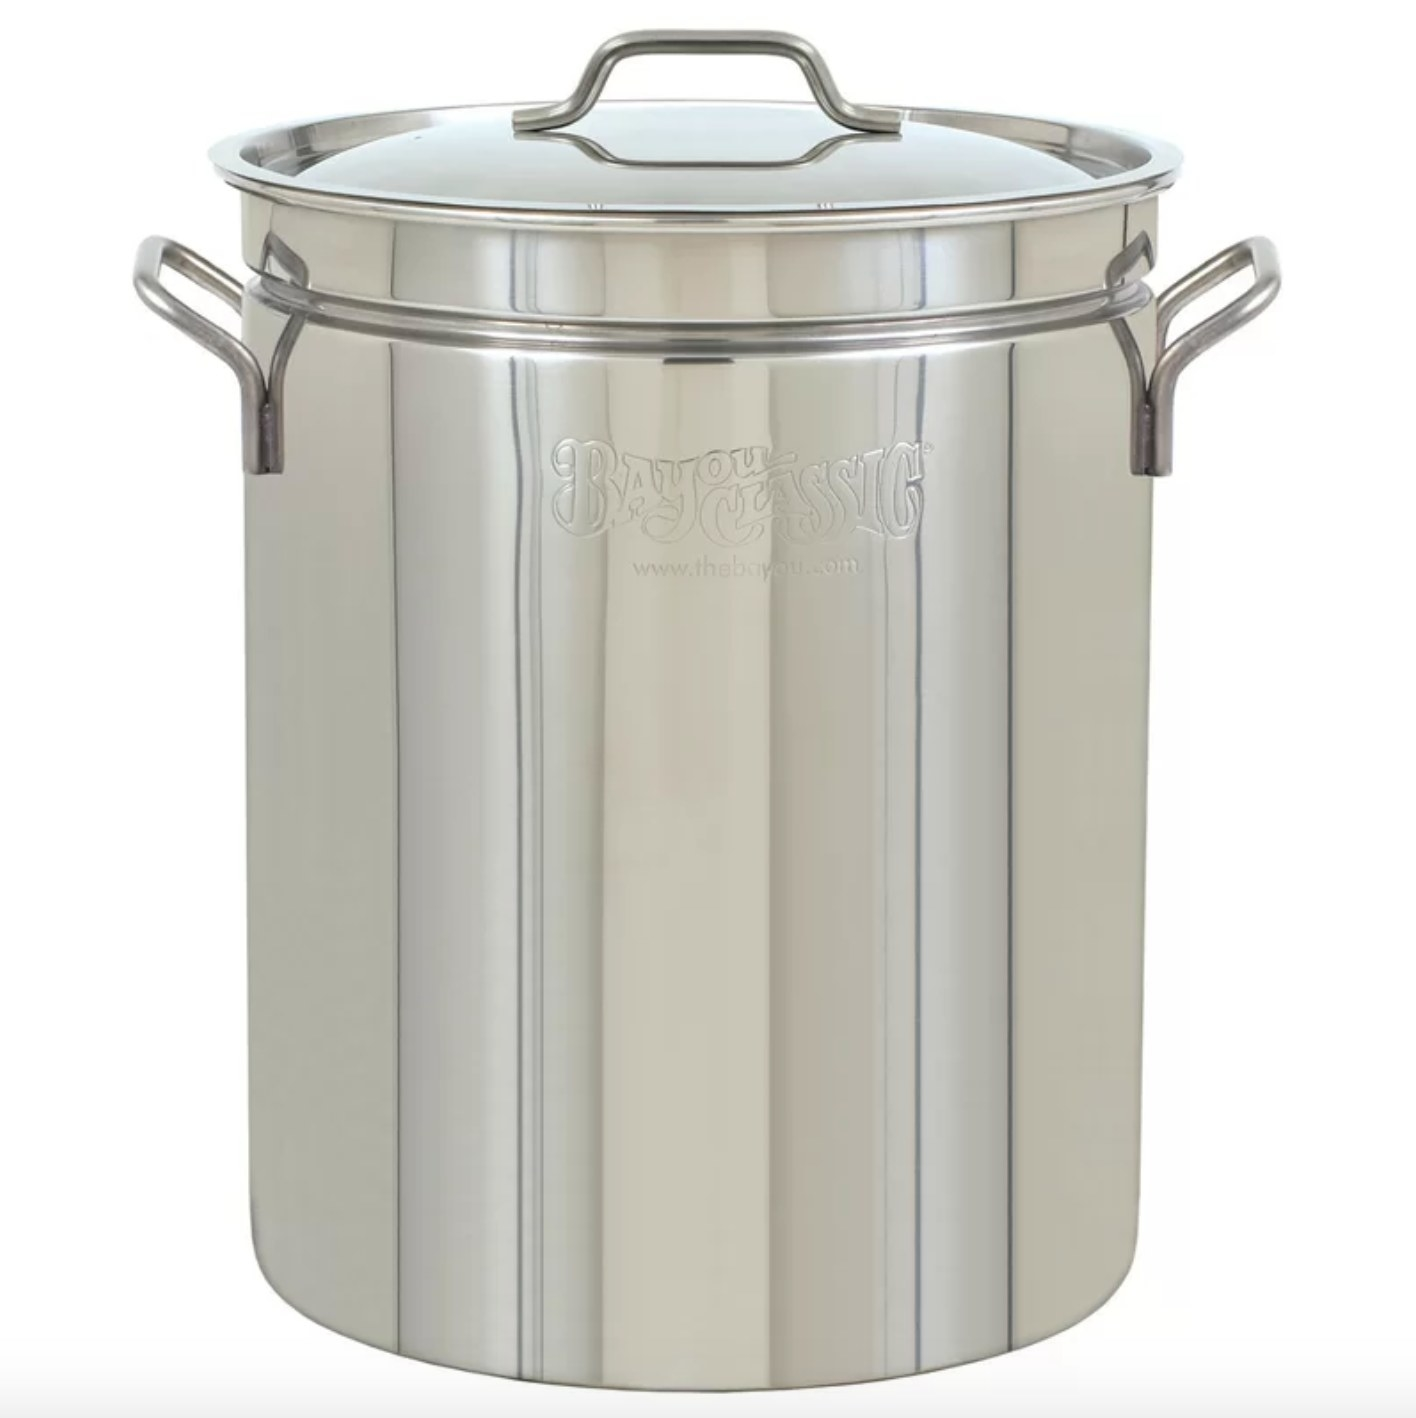 The stainless steel steamer